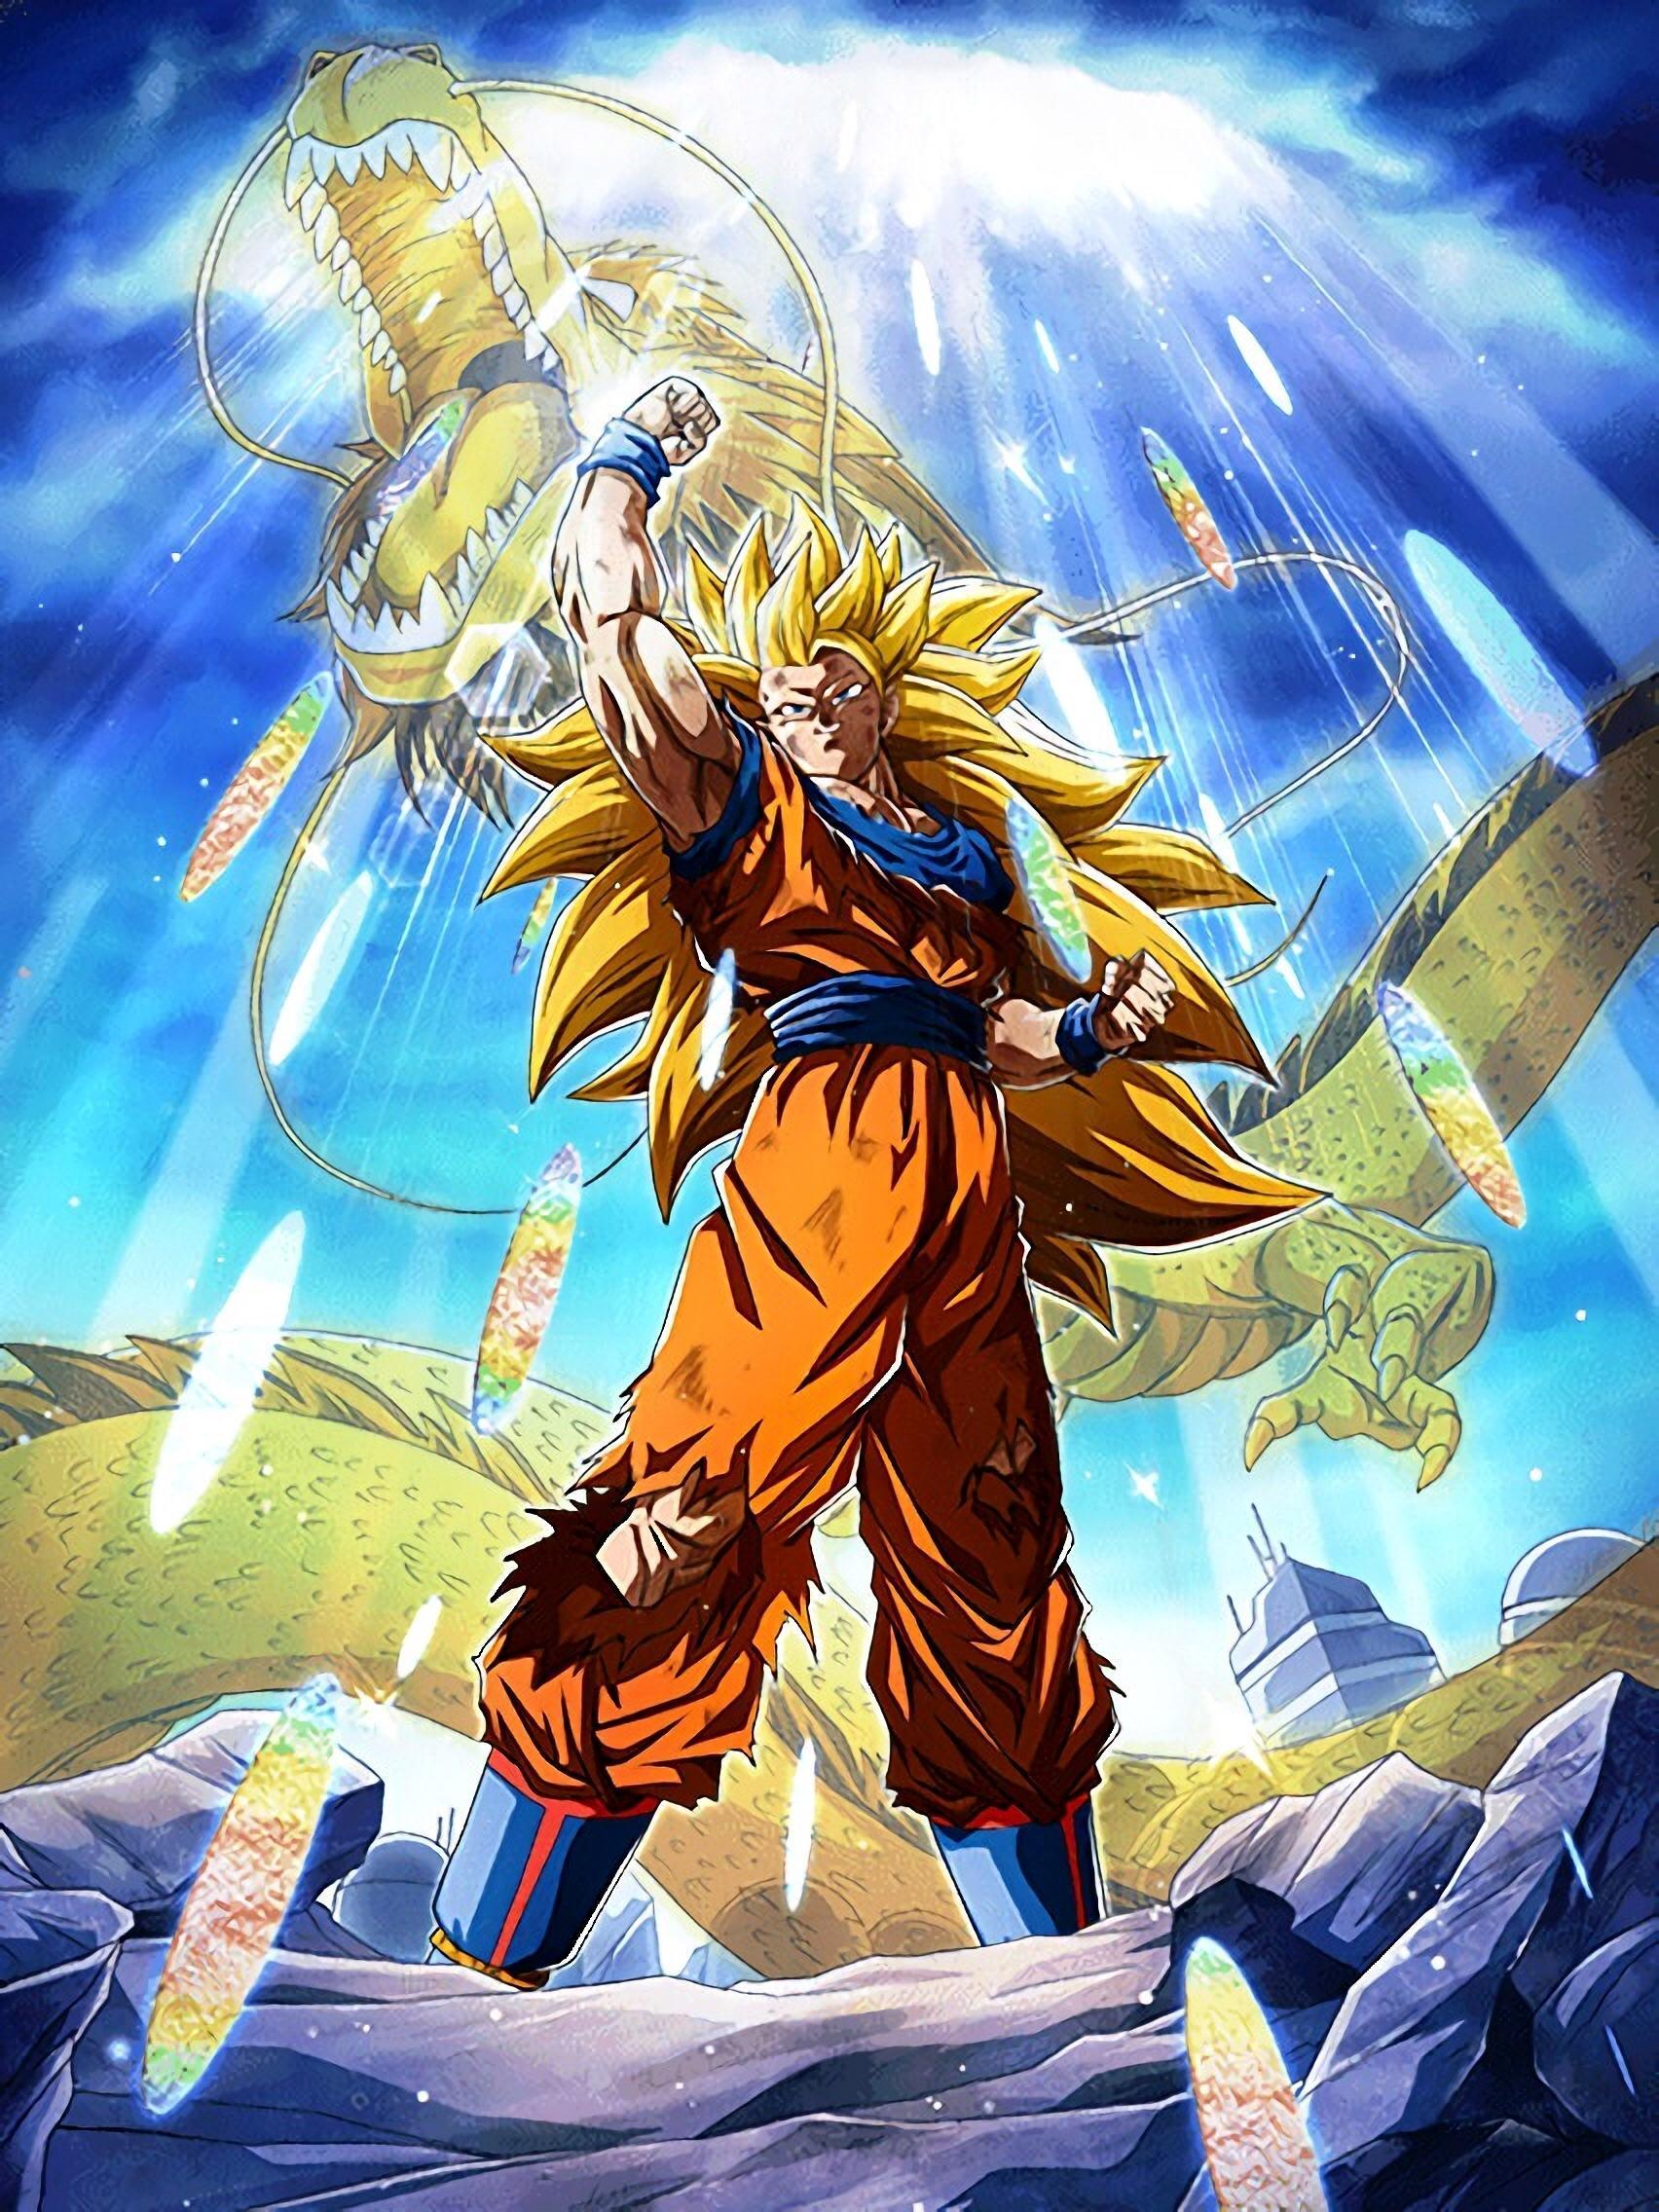 Goku Super Saiyan 3 Wallpapers Top Free Goku Super Saiyan 3 Backgrounds Wallpaperaccess